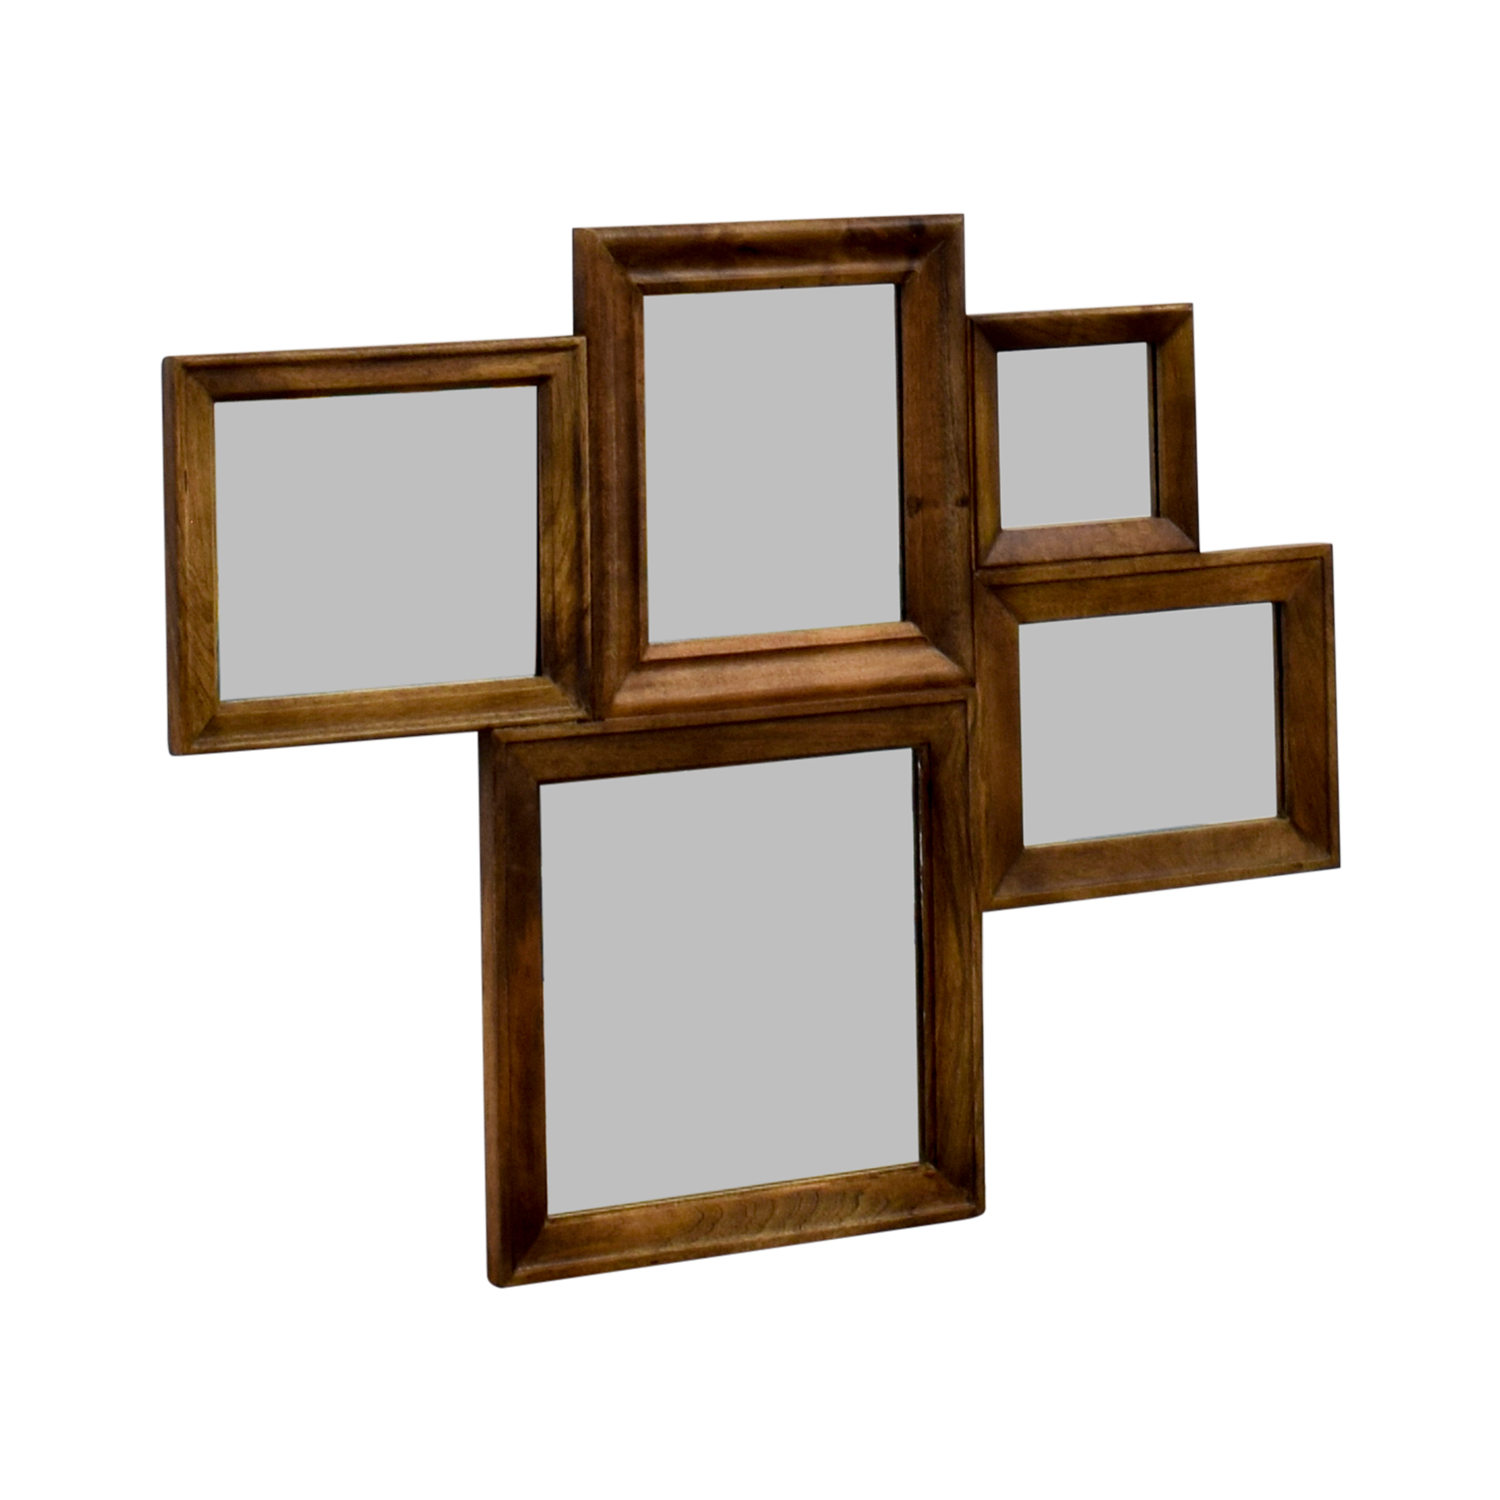 West Elm West Elm Jigsaw Mirror price